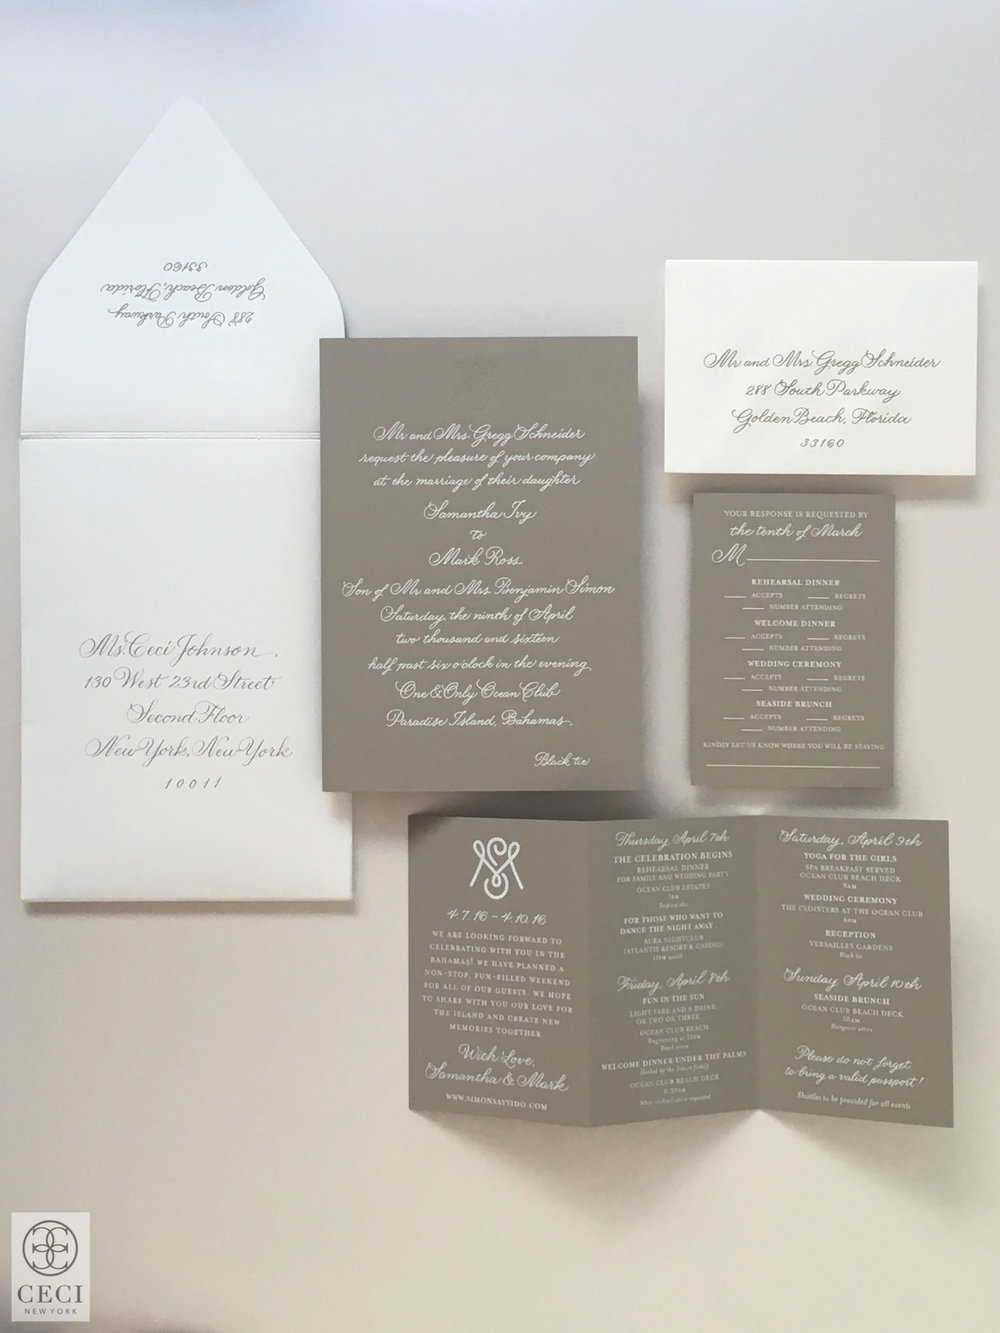 Ceci_New_York_Ceci_Style_Ceci_Johnson_Luxury_Lifestyle_Paradise_Island_Bahamas_Wedding_Engraved_Inspiration_Design_Custom_Couture_Personalized_Invitations_--2.jpg